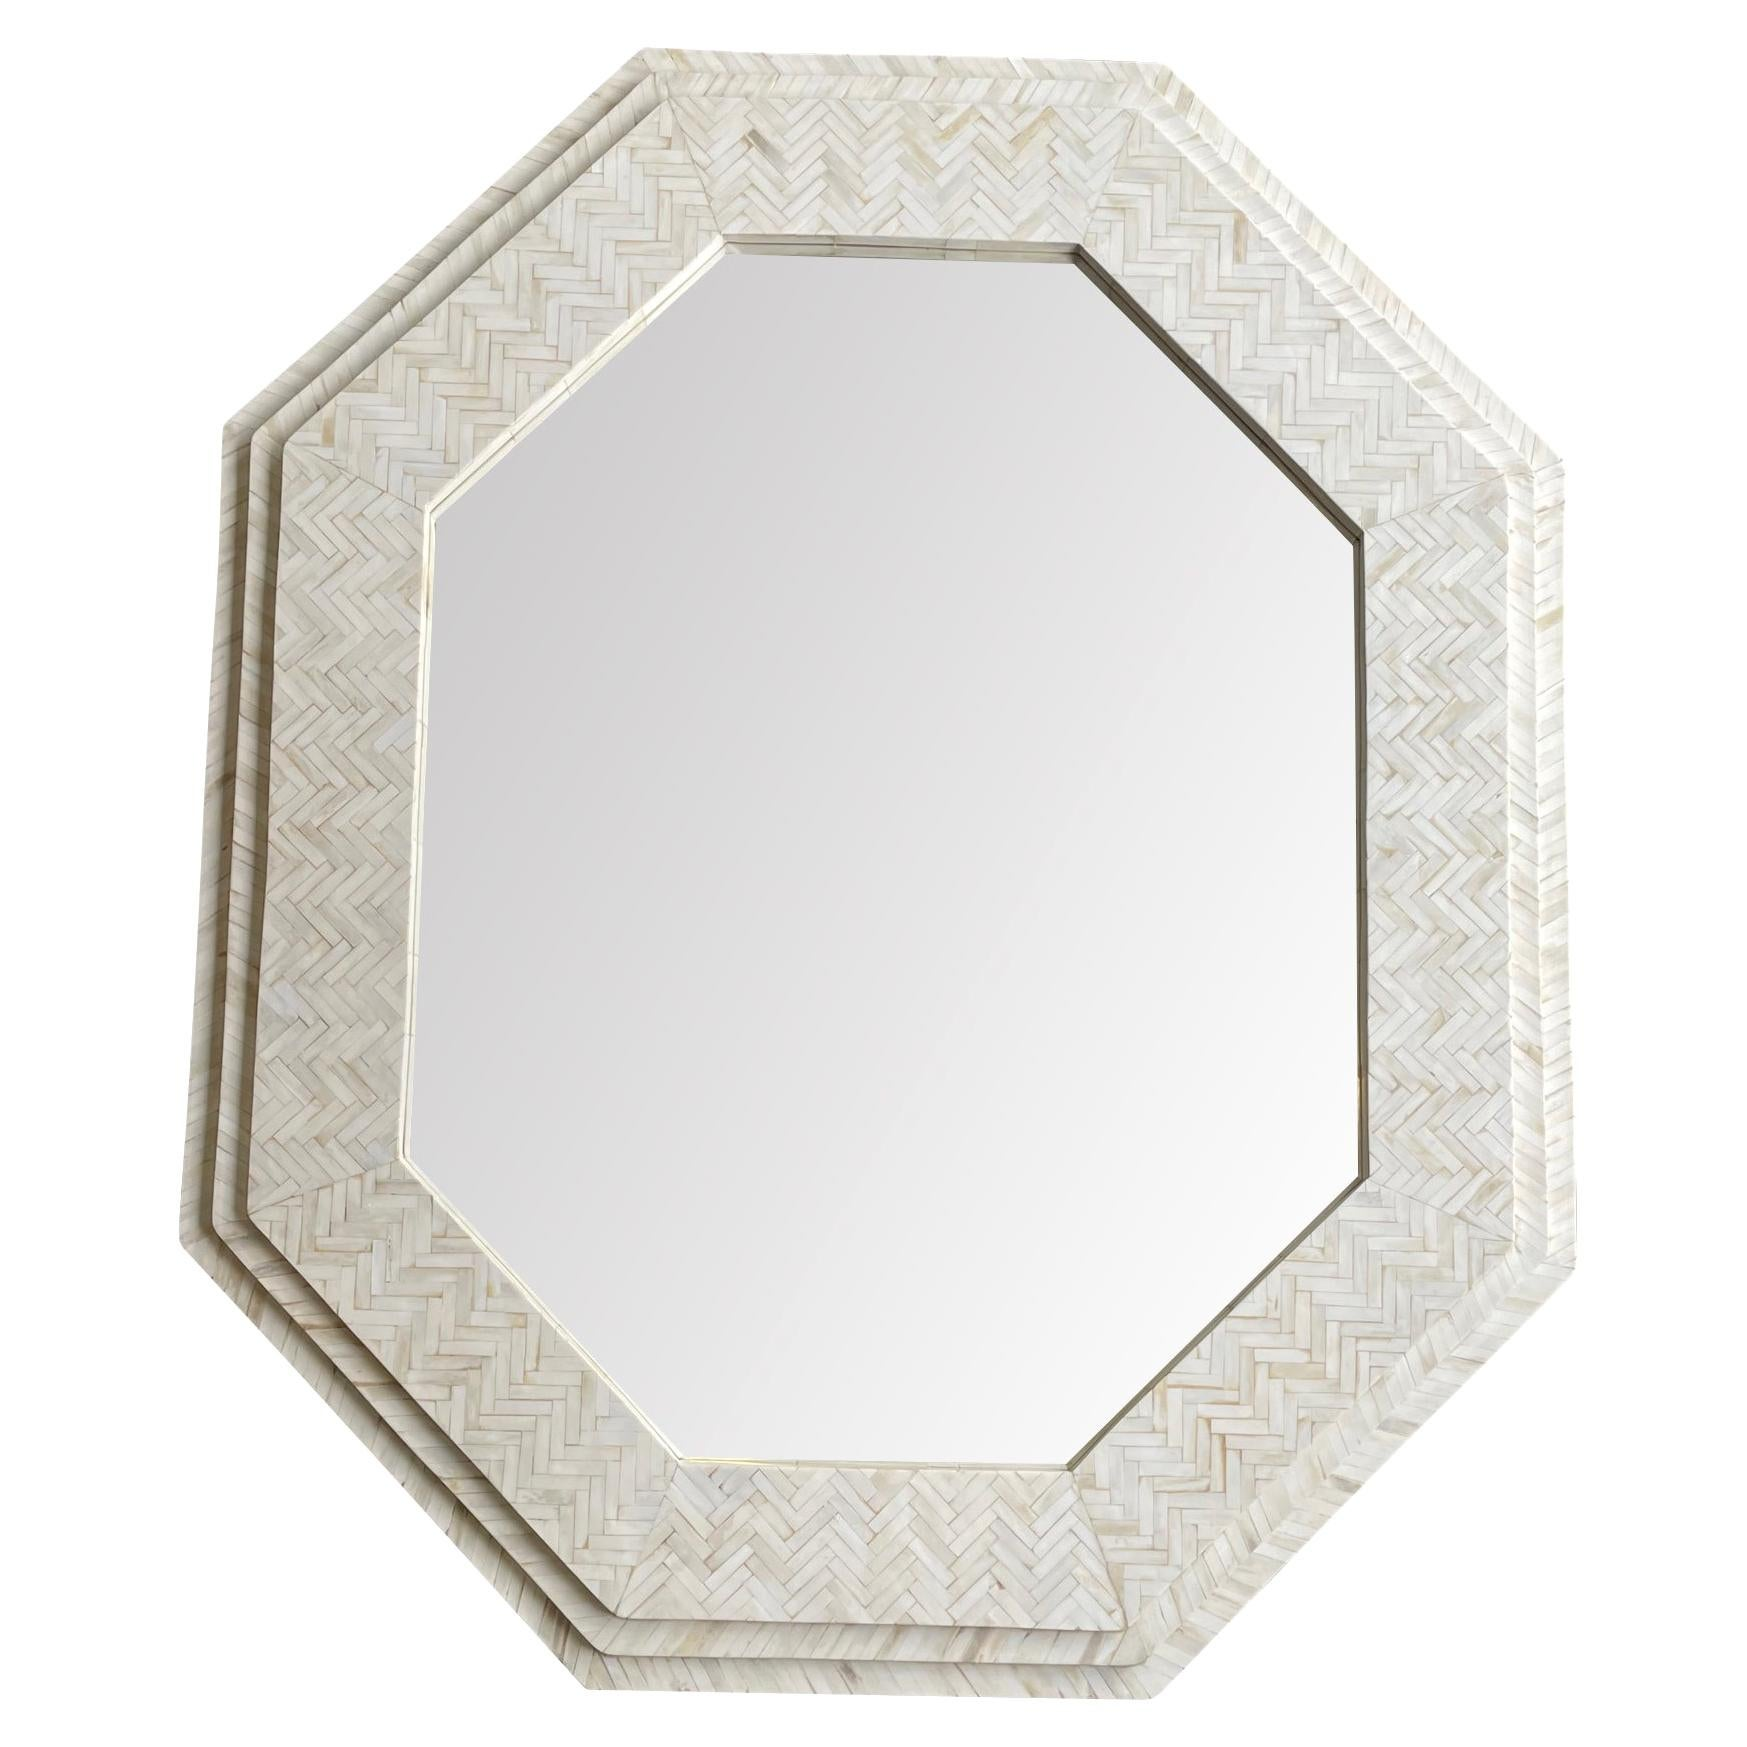 Large Handmade Inlaid Bone Octagonal Mirror in the Style of Enrique Garcel